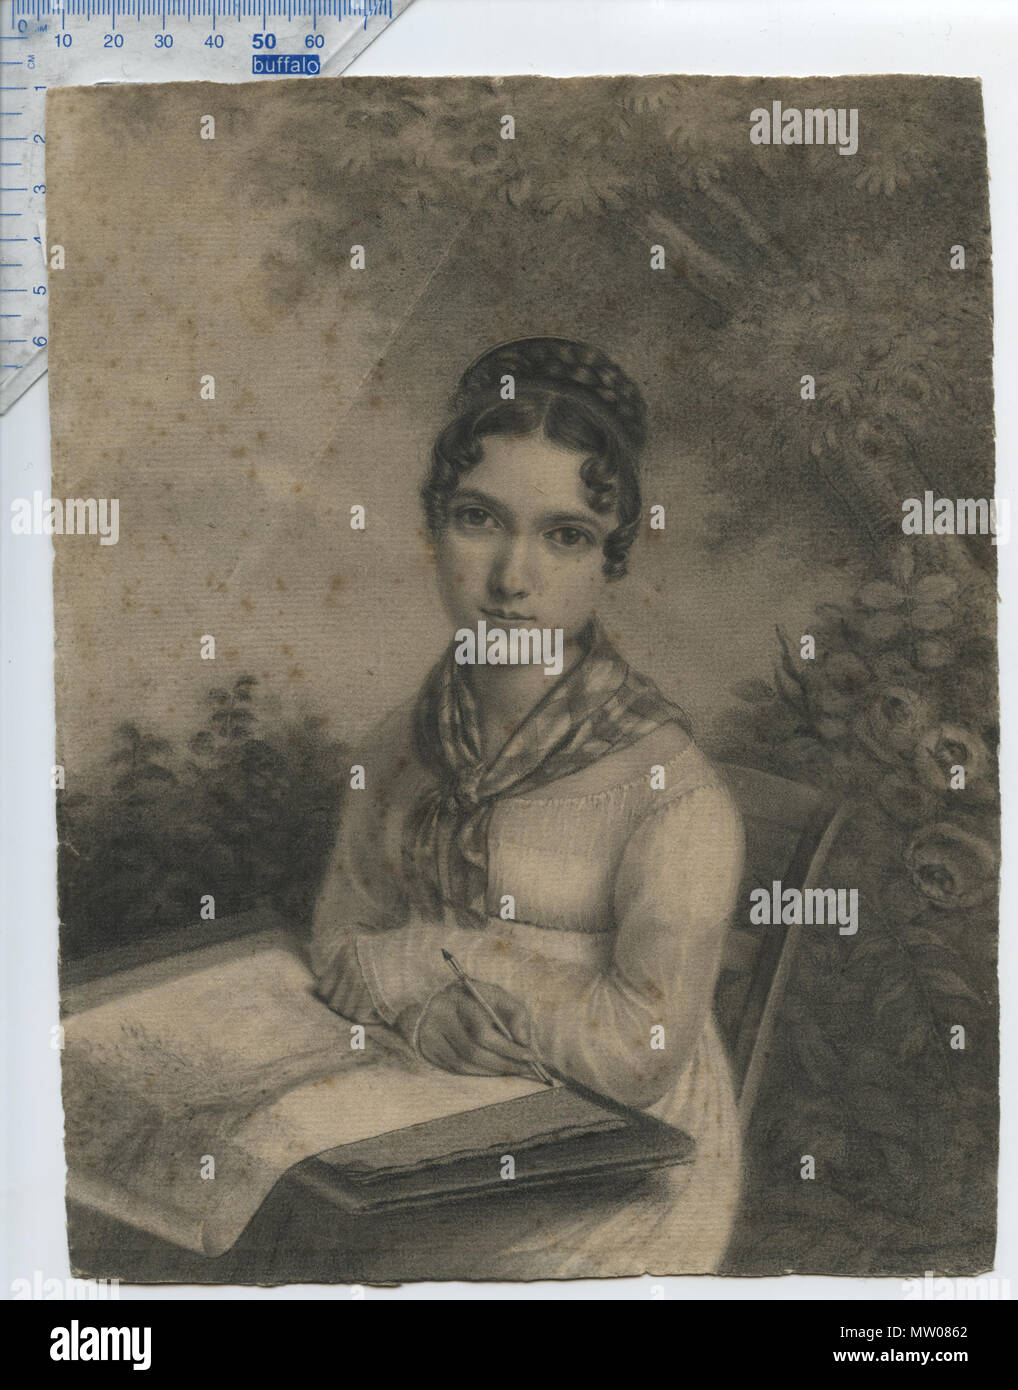 . English: Portrait of an Artistic Lady sitting in a garden, with what appears to be a portfolio-case on her lap, drawing a picture of a tree; subject not identified, but might be identifiable. French school, Empire style, Napoleonic era (N I); circa 1810. Unsigned, artist not (definitely) identified, dealer attribution to Jean-Jacques Karpff (a.k.a. 'Kasimir') 1770-1829. Charcoal drawing on laid paper with matermarks; the drawing appears to have been cut down from its original size. Note that the paper was not cut on the square, & its shape is slightly irregular. Wittig collection, item 51; o Stock Photo